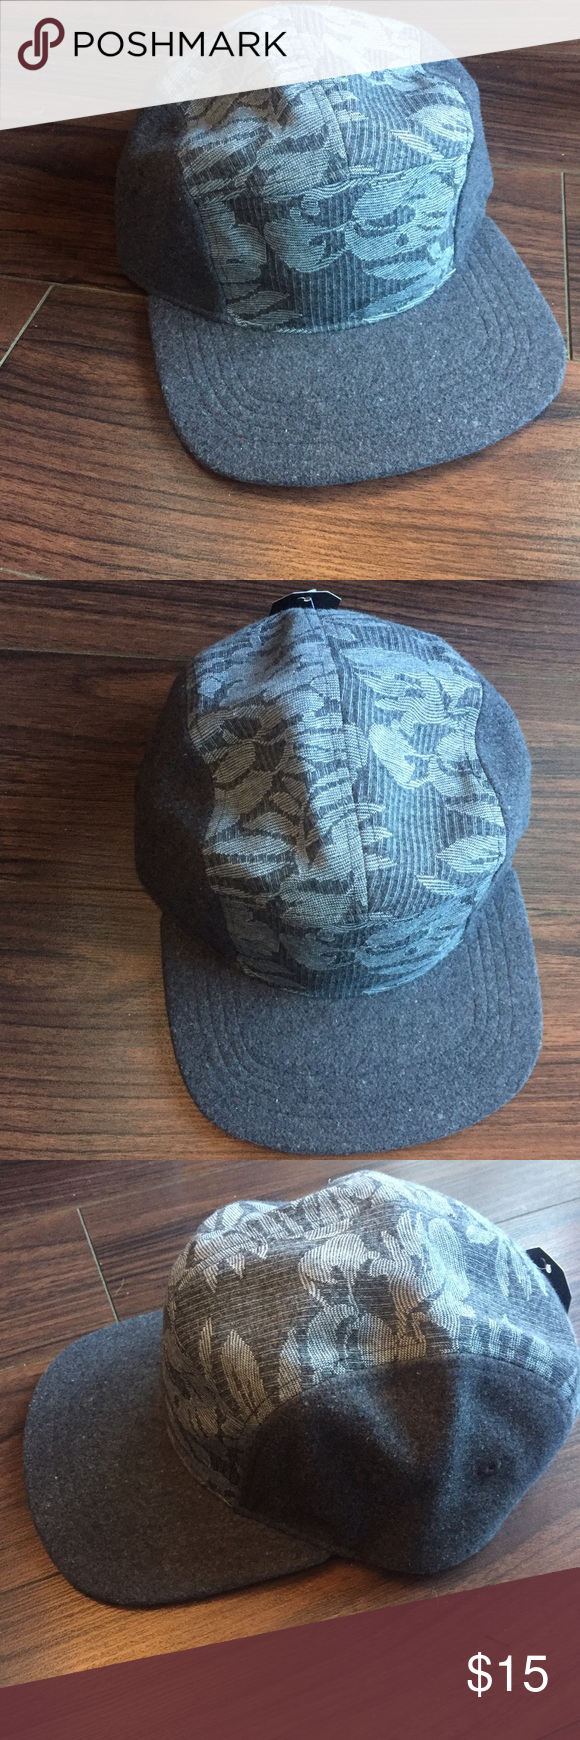 f85a8aff502 Grey Floral Street Wear Cap 🔥SAMPLE. PacsunFree ...